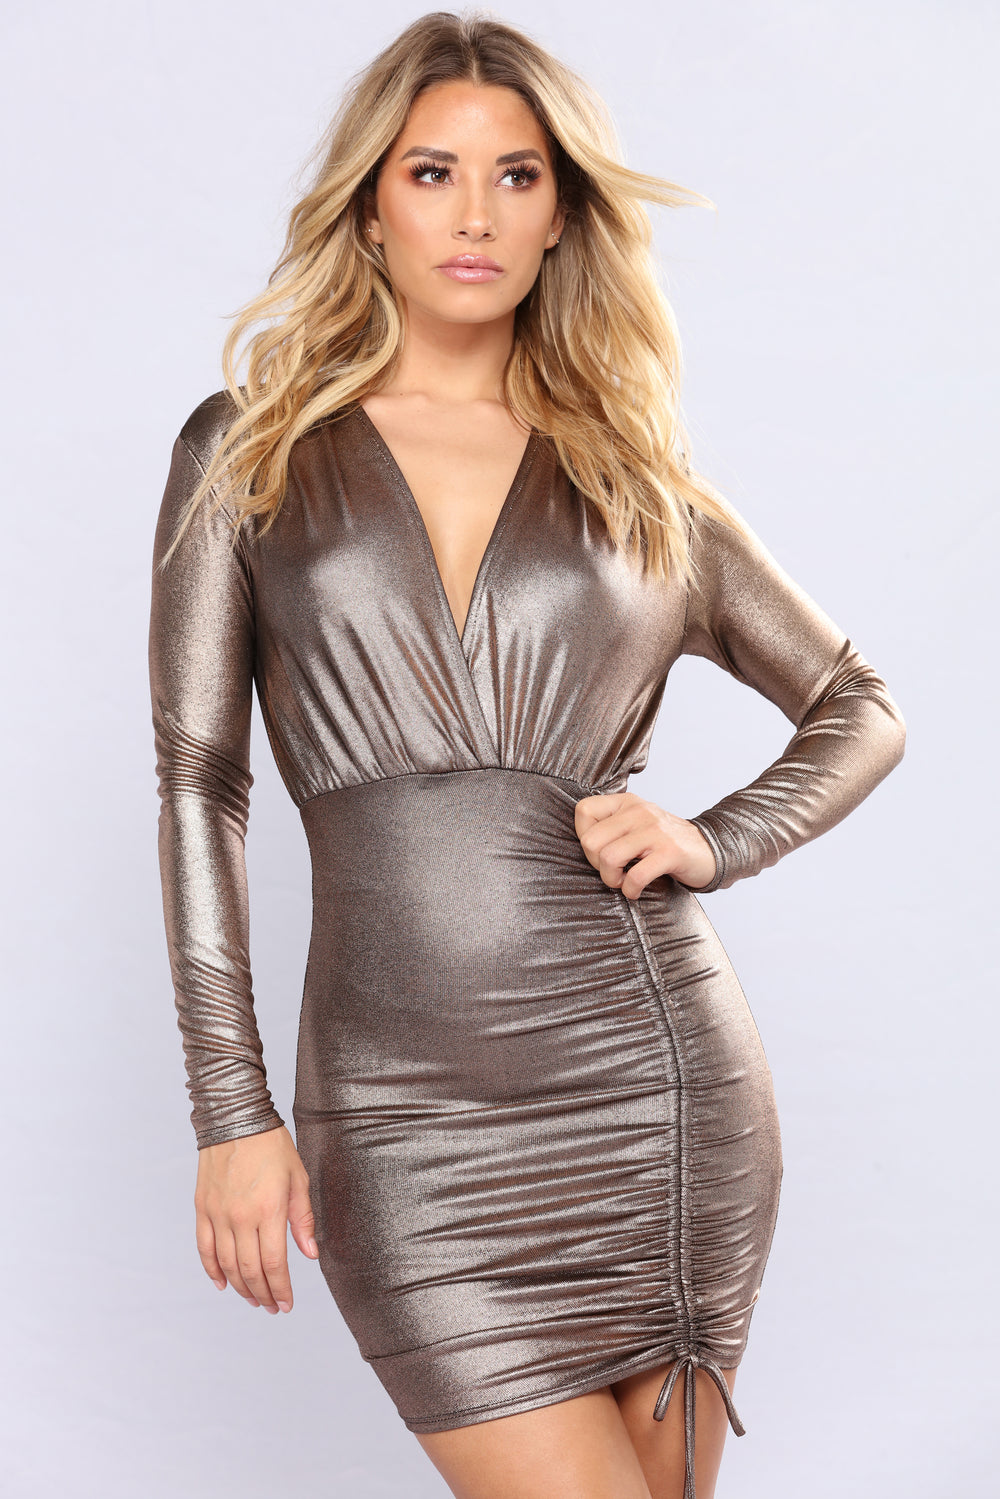 Up In Space Metallic Dress - Gold